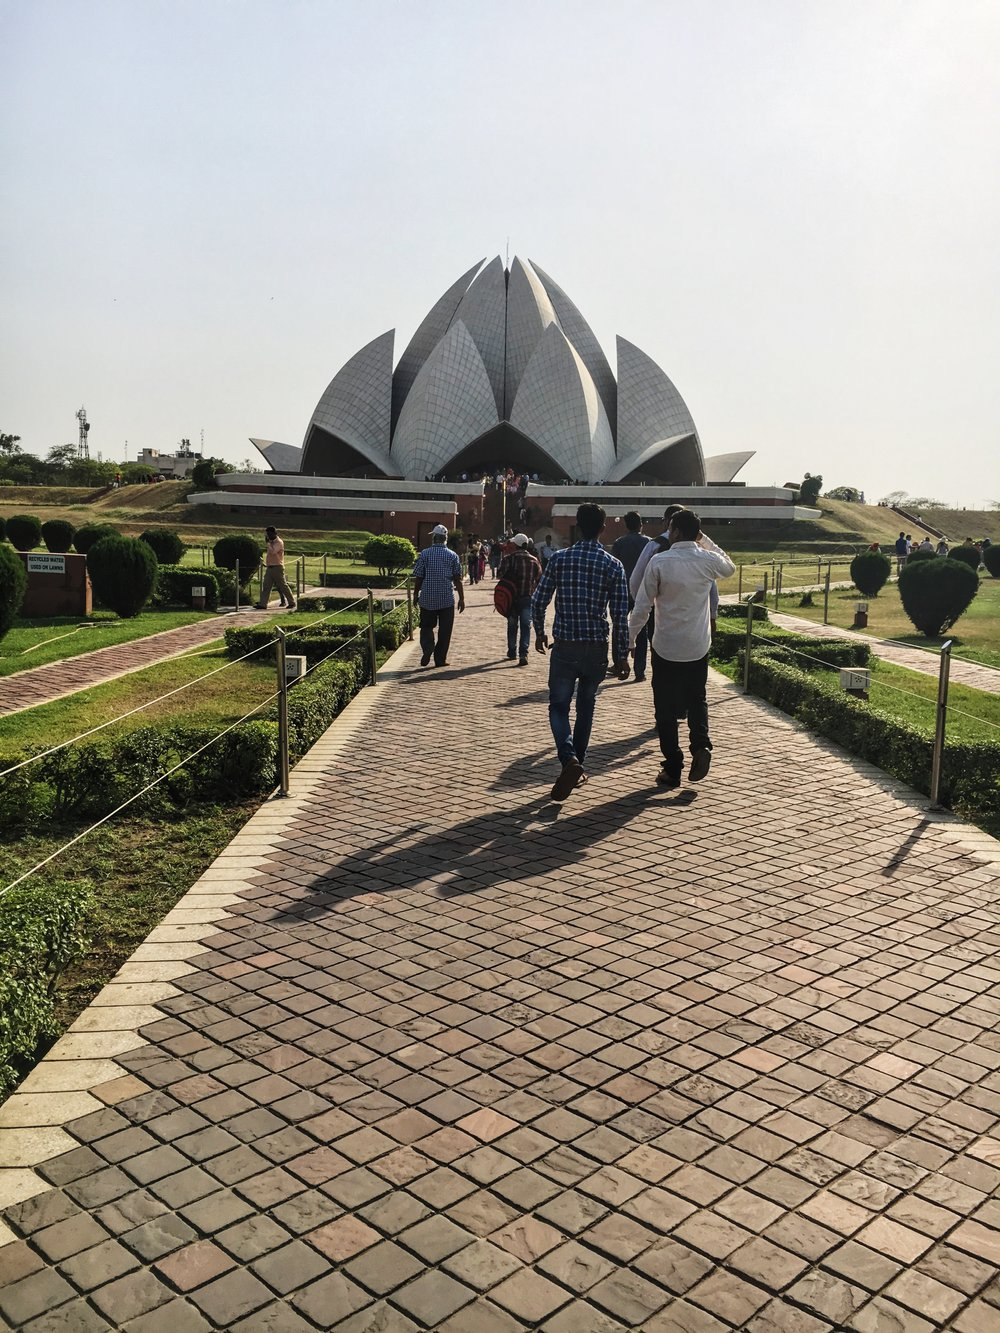 this is the Lotus Temple Grounds, which is actually what the Sydney opera house was modeled after. I wish I could have gotten a better picture, but it was so bright that I couldn't see my camera haha!